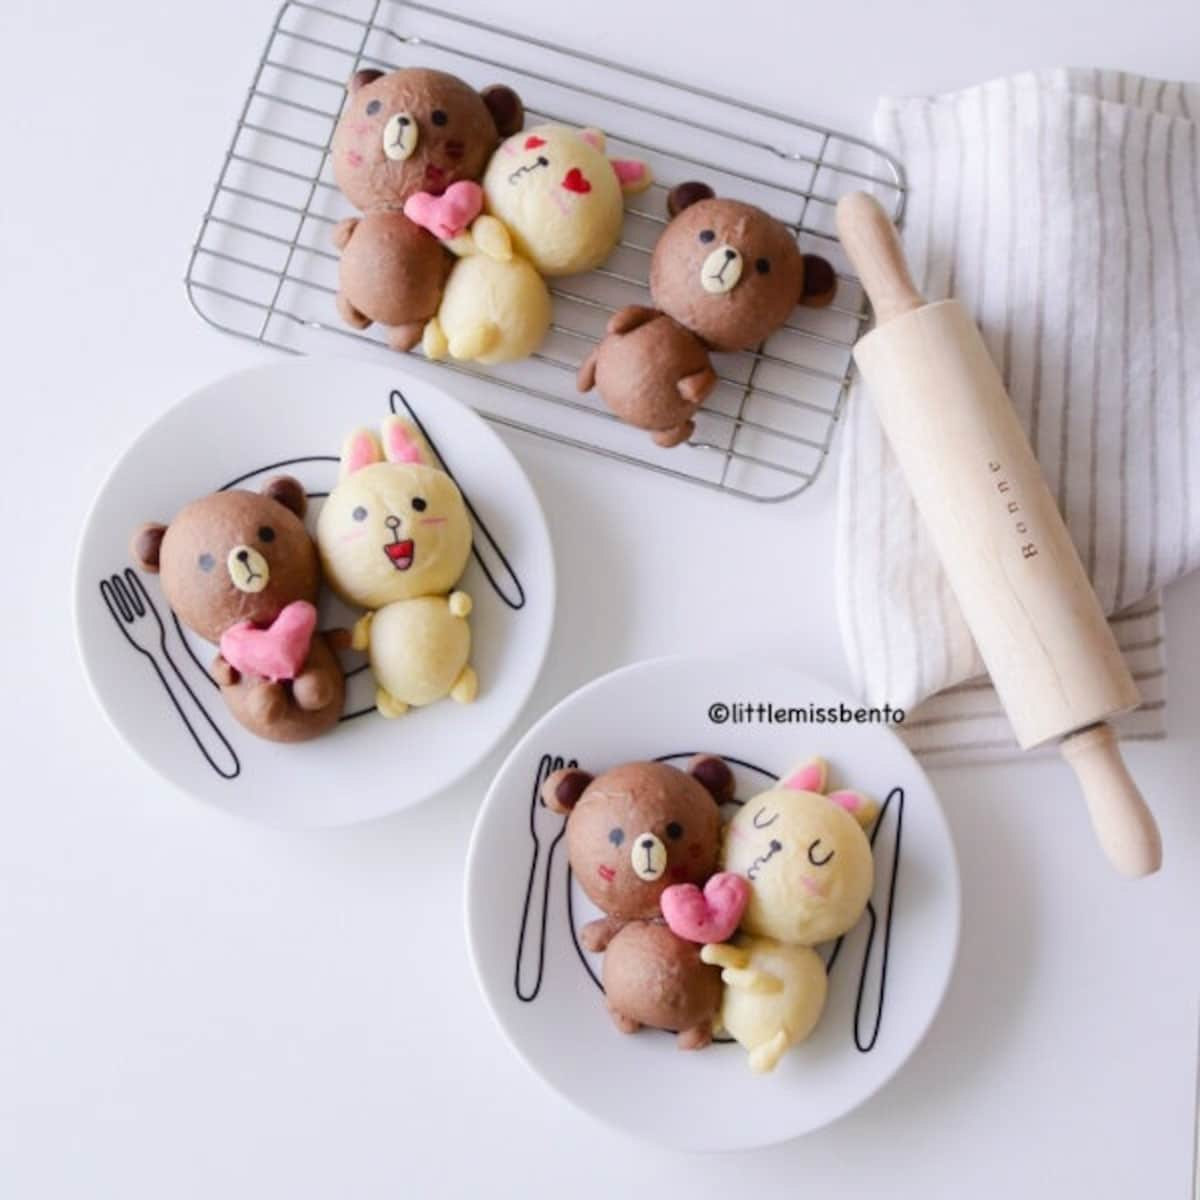 5. Brown & Cony Pull-Apart Bread Recipe